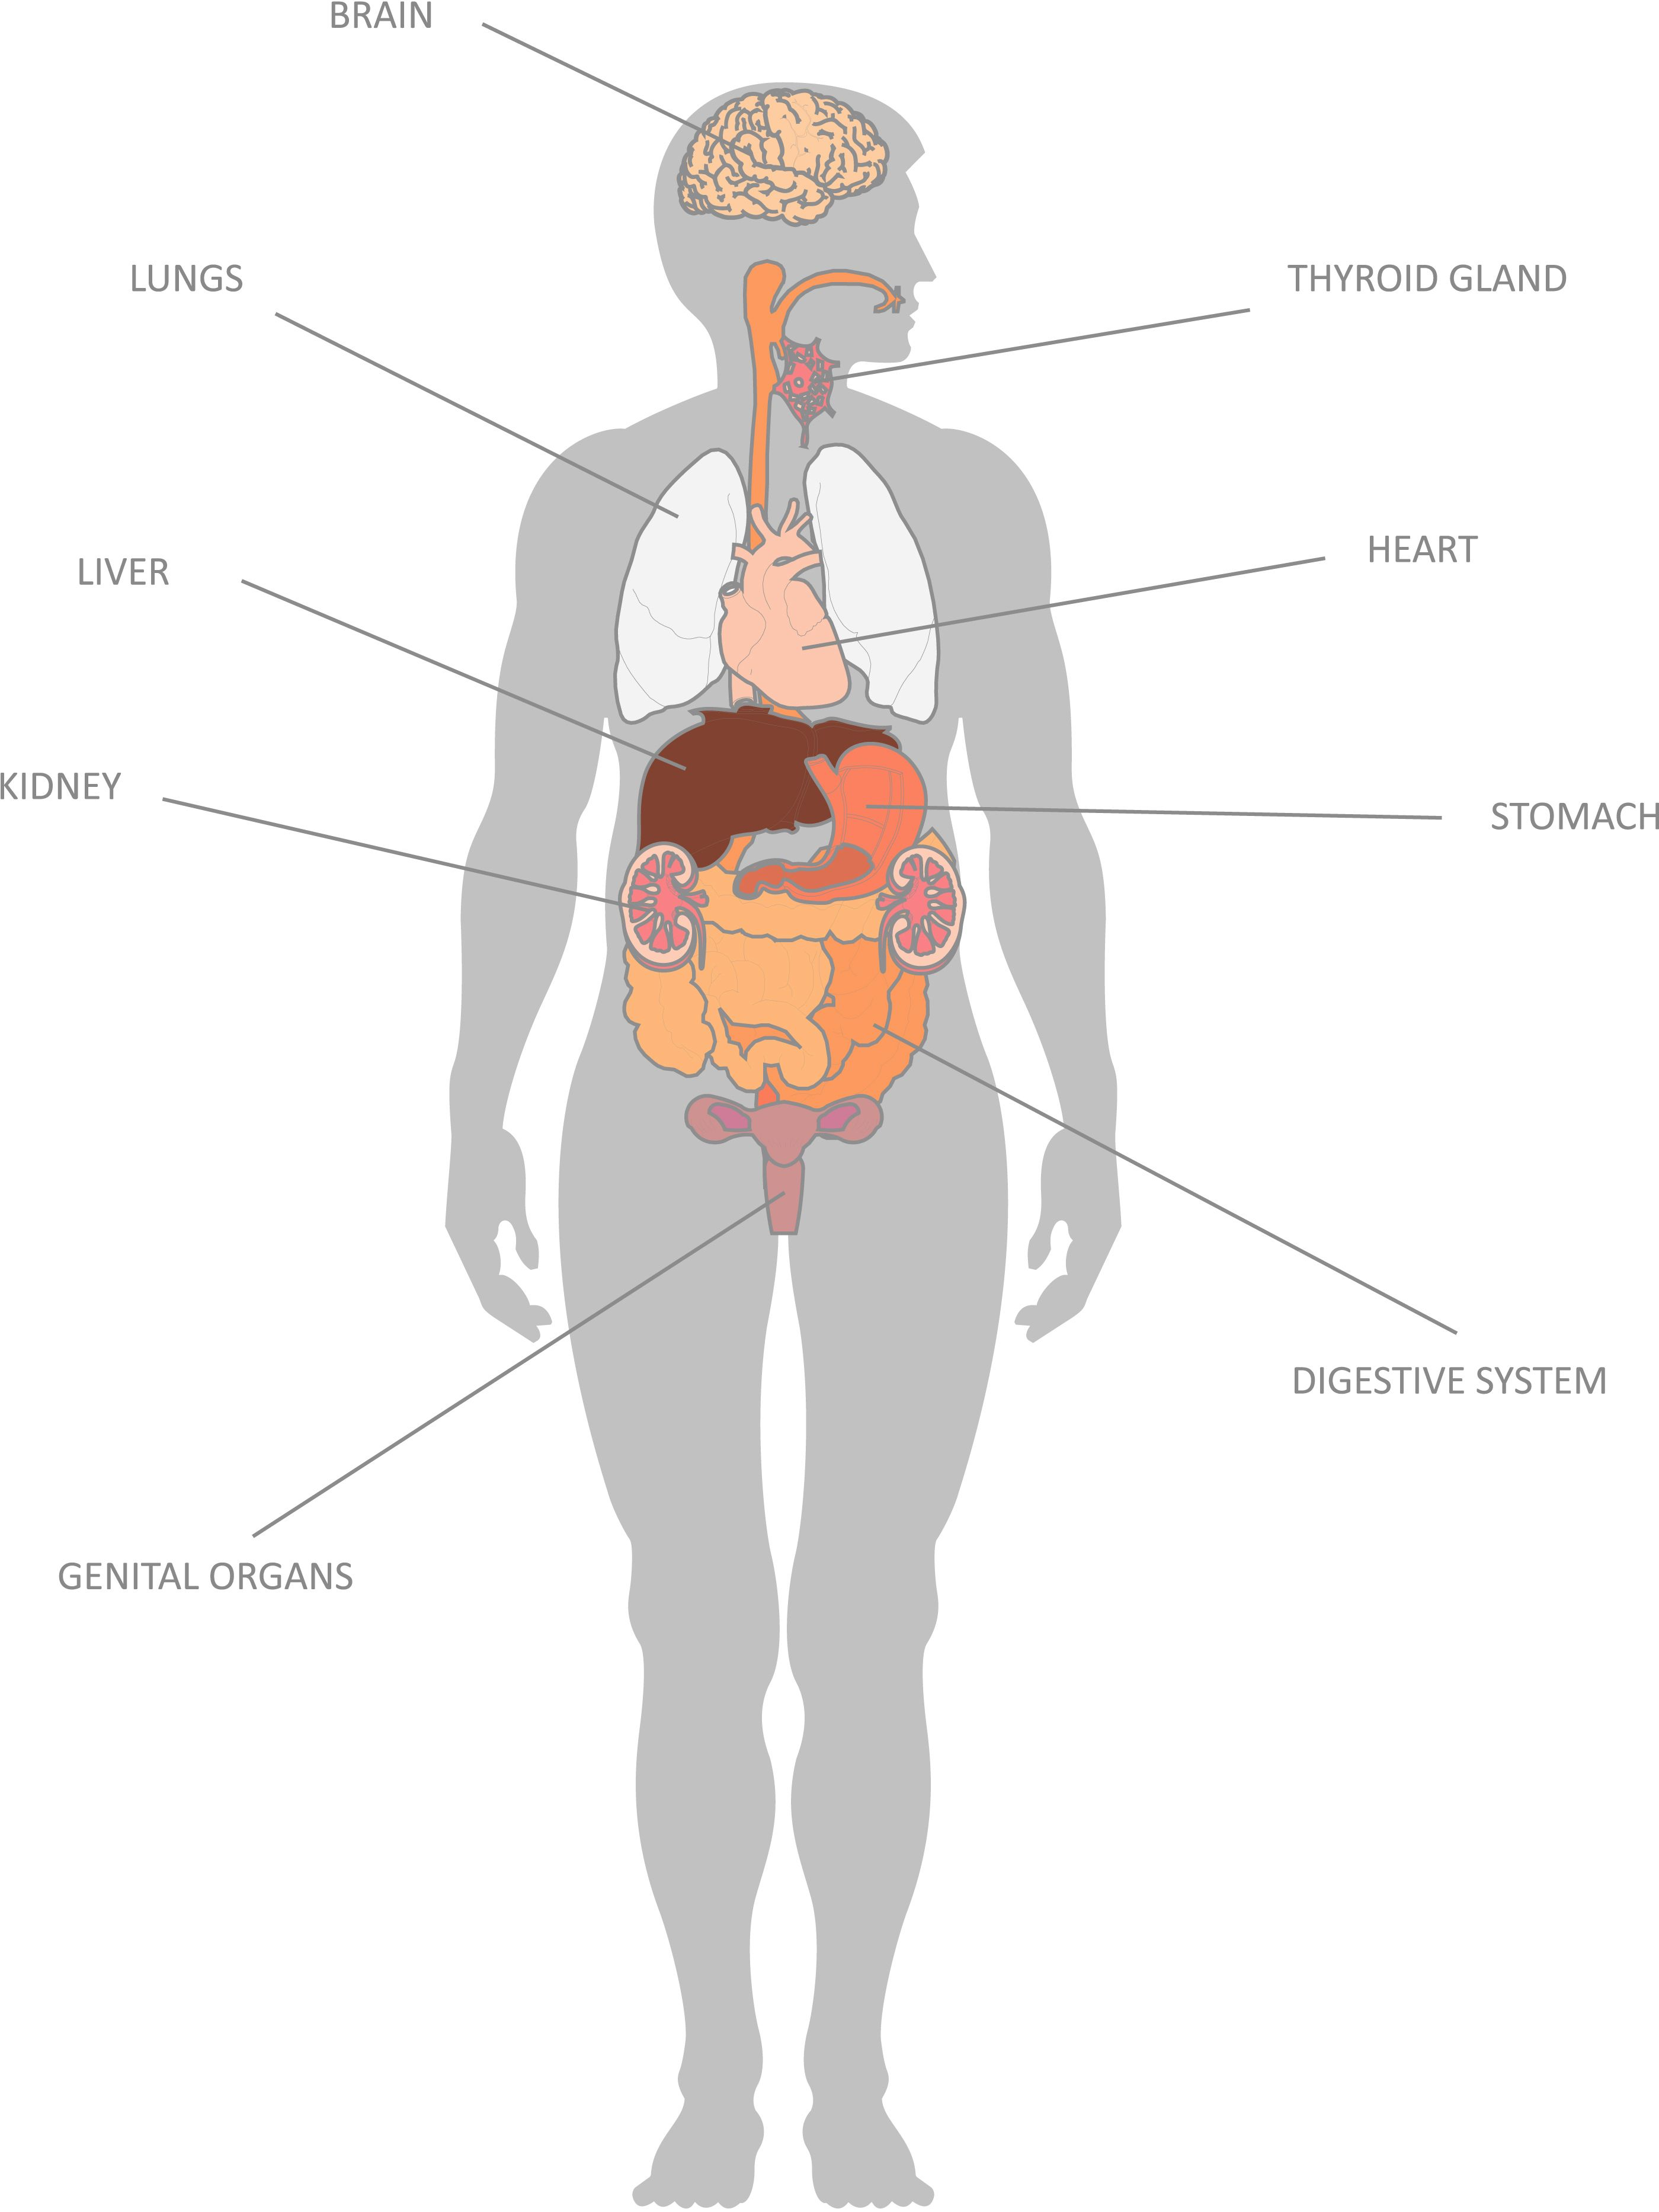 Having Map Of Internal Organs To Understand Human Body